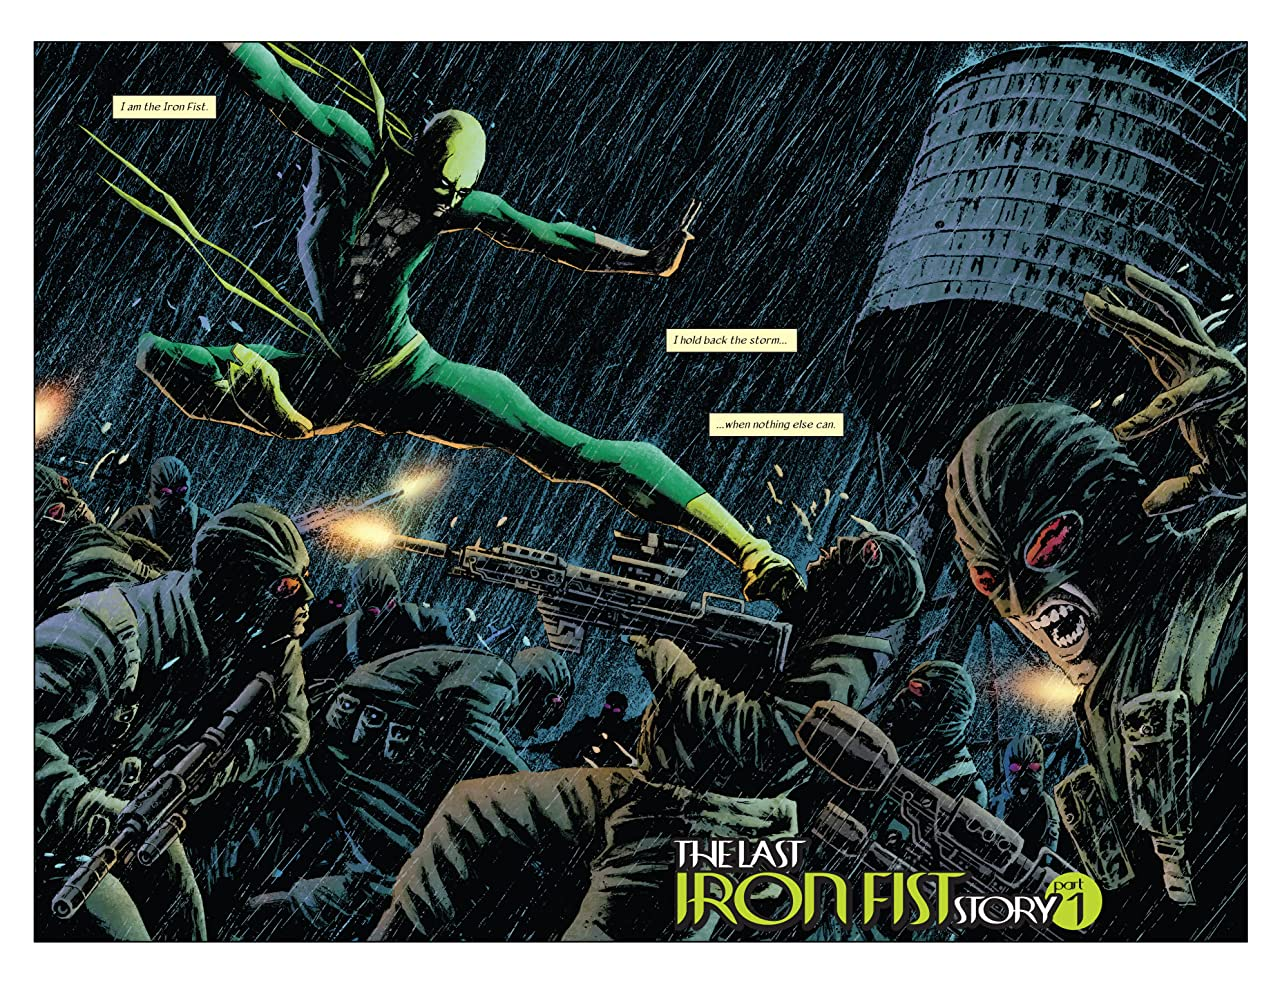 Immortal Iron Fist Tome 1: The Last Iron Fist Story